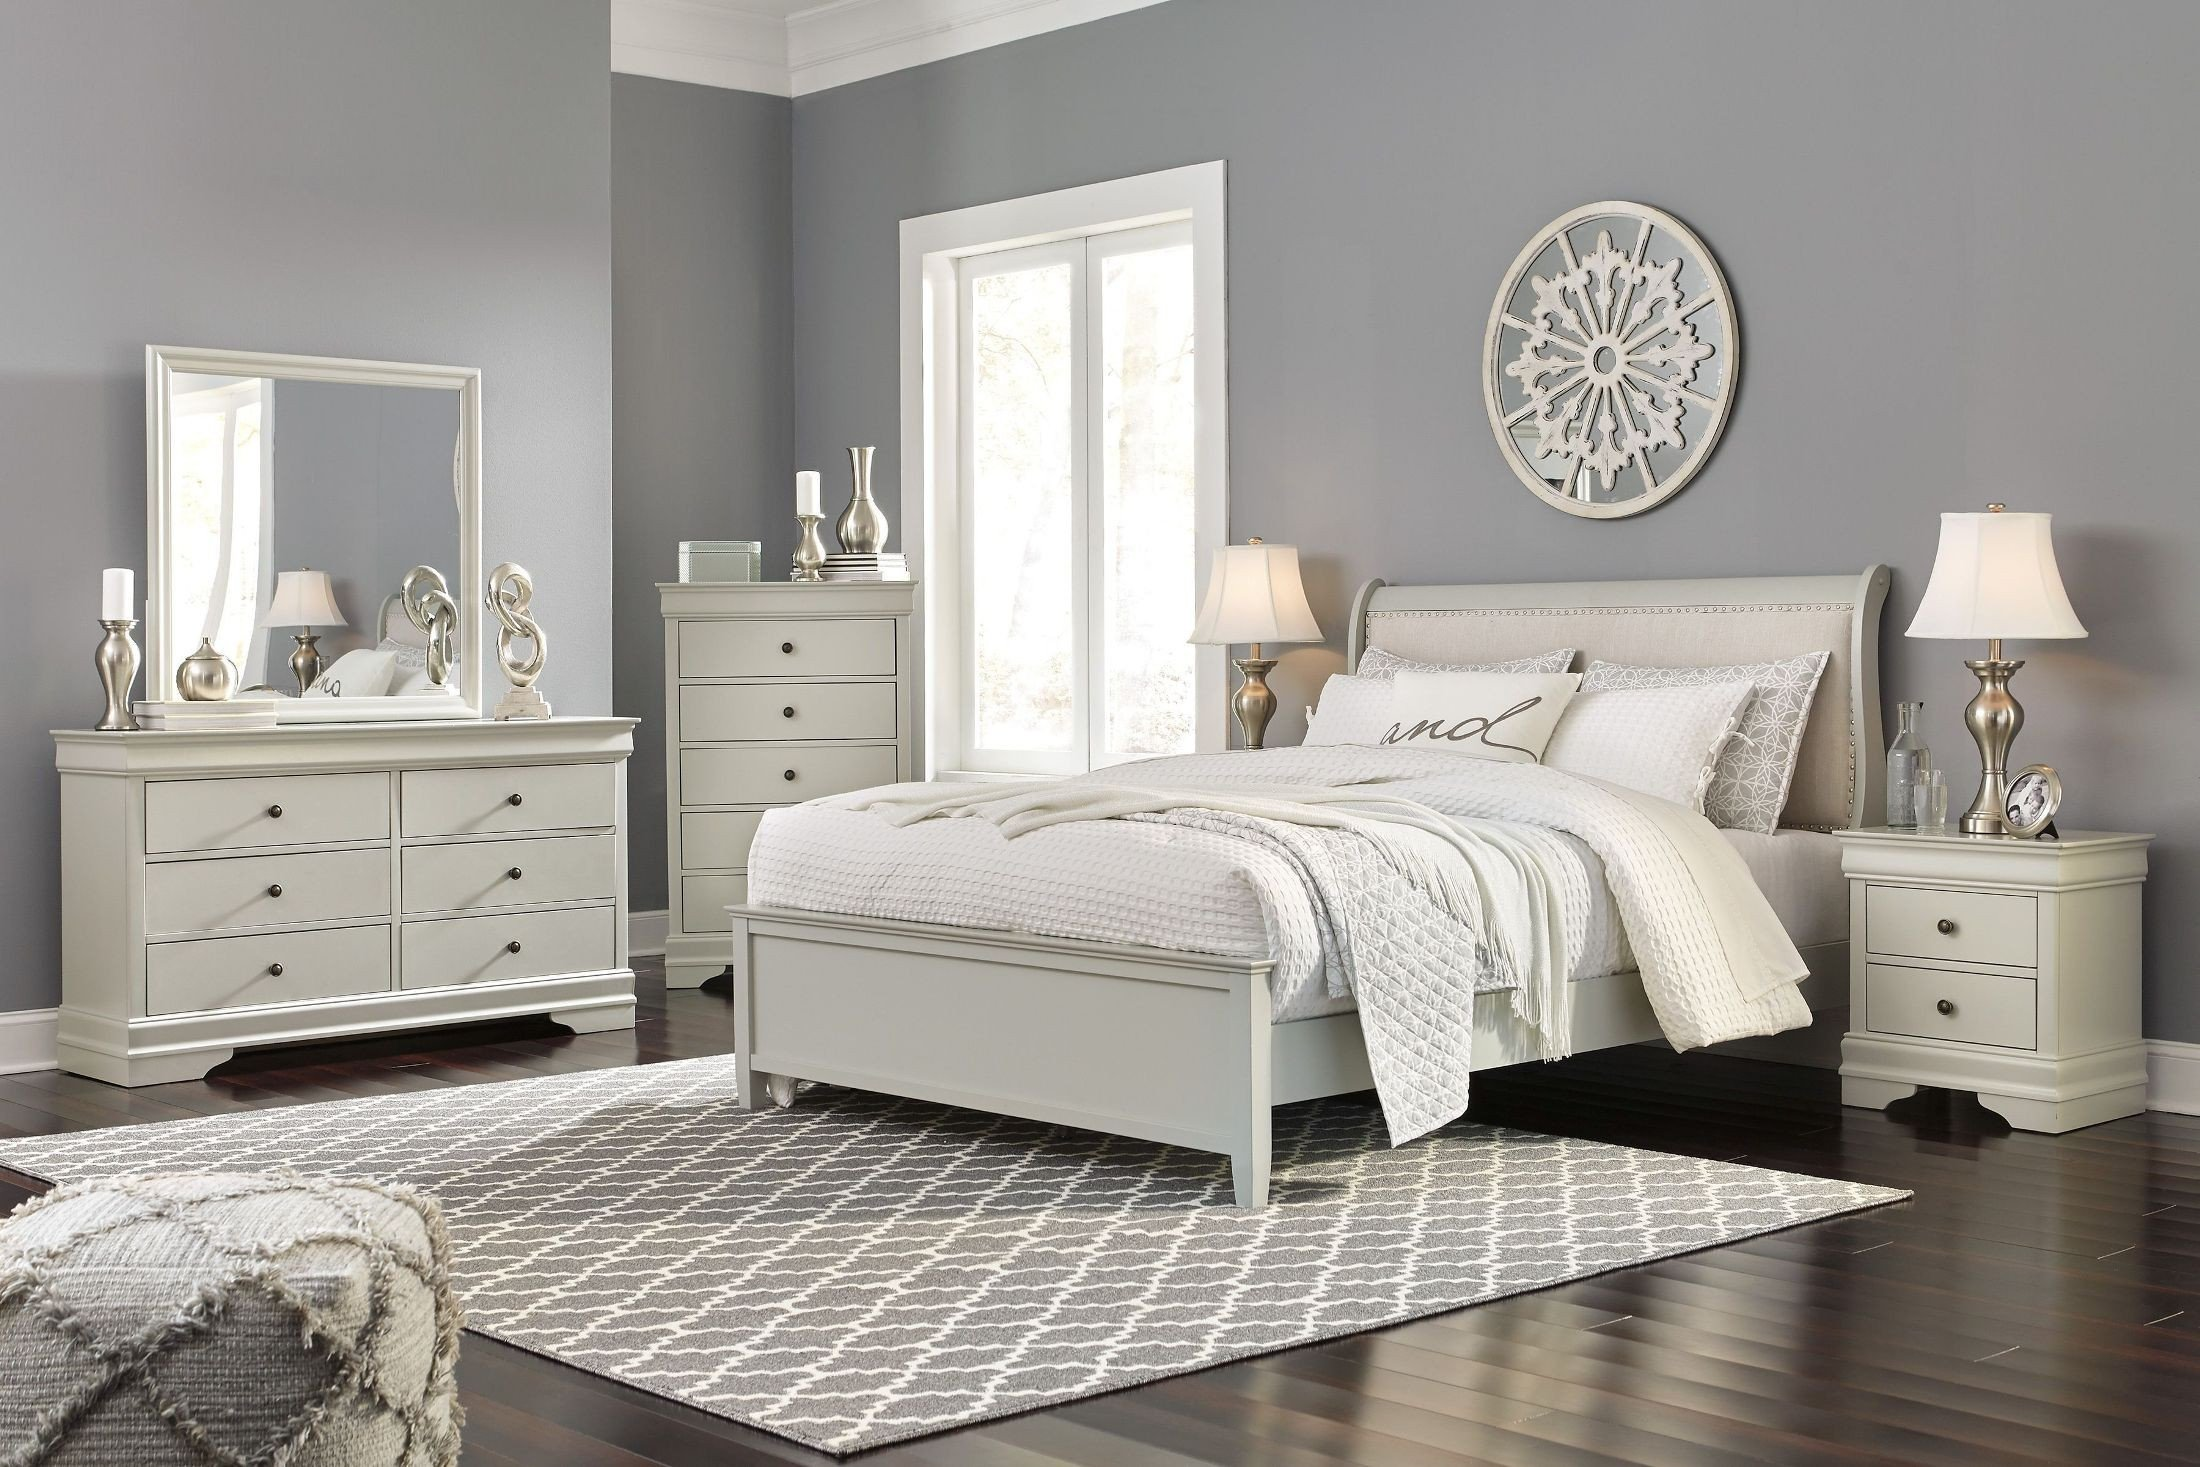 Tommy Bahama Bedroom Furniture Inspirational Emma Mason Signature Jarred 5 Piece Sleigh Bedroom Set In Gray